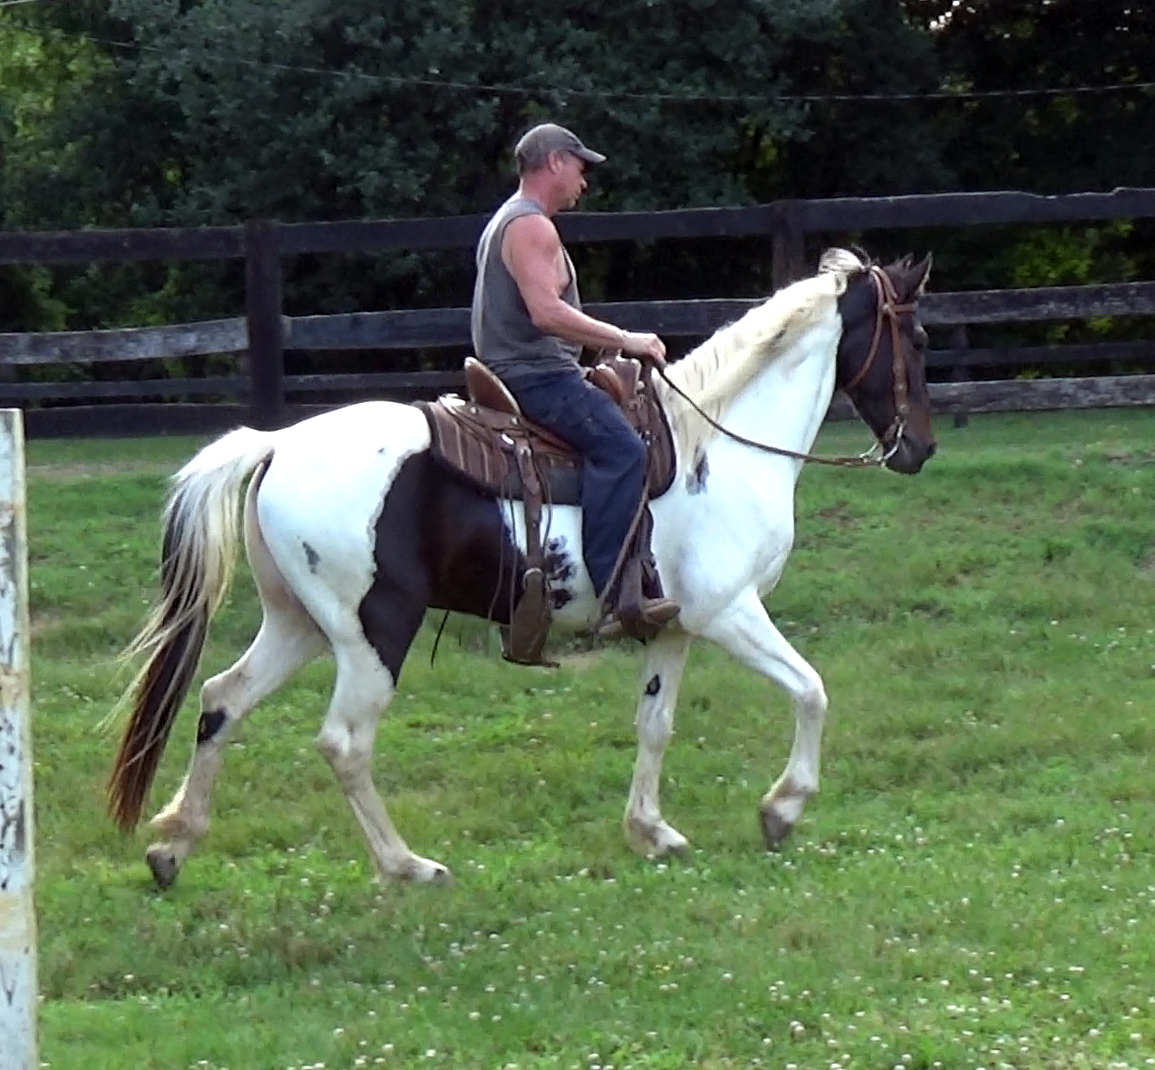 Ozarks Big Alvin, Reg Pinto Gelding - Alvin is a big, tall and fancy guy. He is sired by a Missouri Fox Trotter and out of a Spotted Saddle mare. He has been ridding on the trails and out on the farm by experienced youth riders. Smart and friendly boy, loves attention.